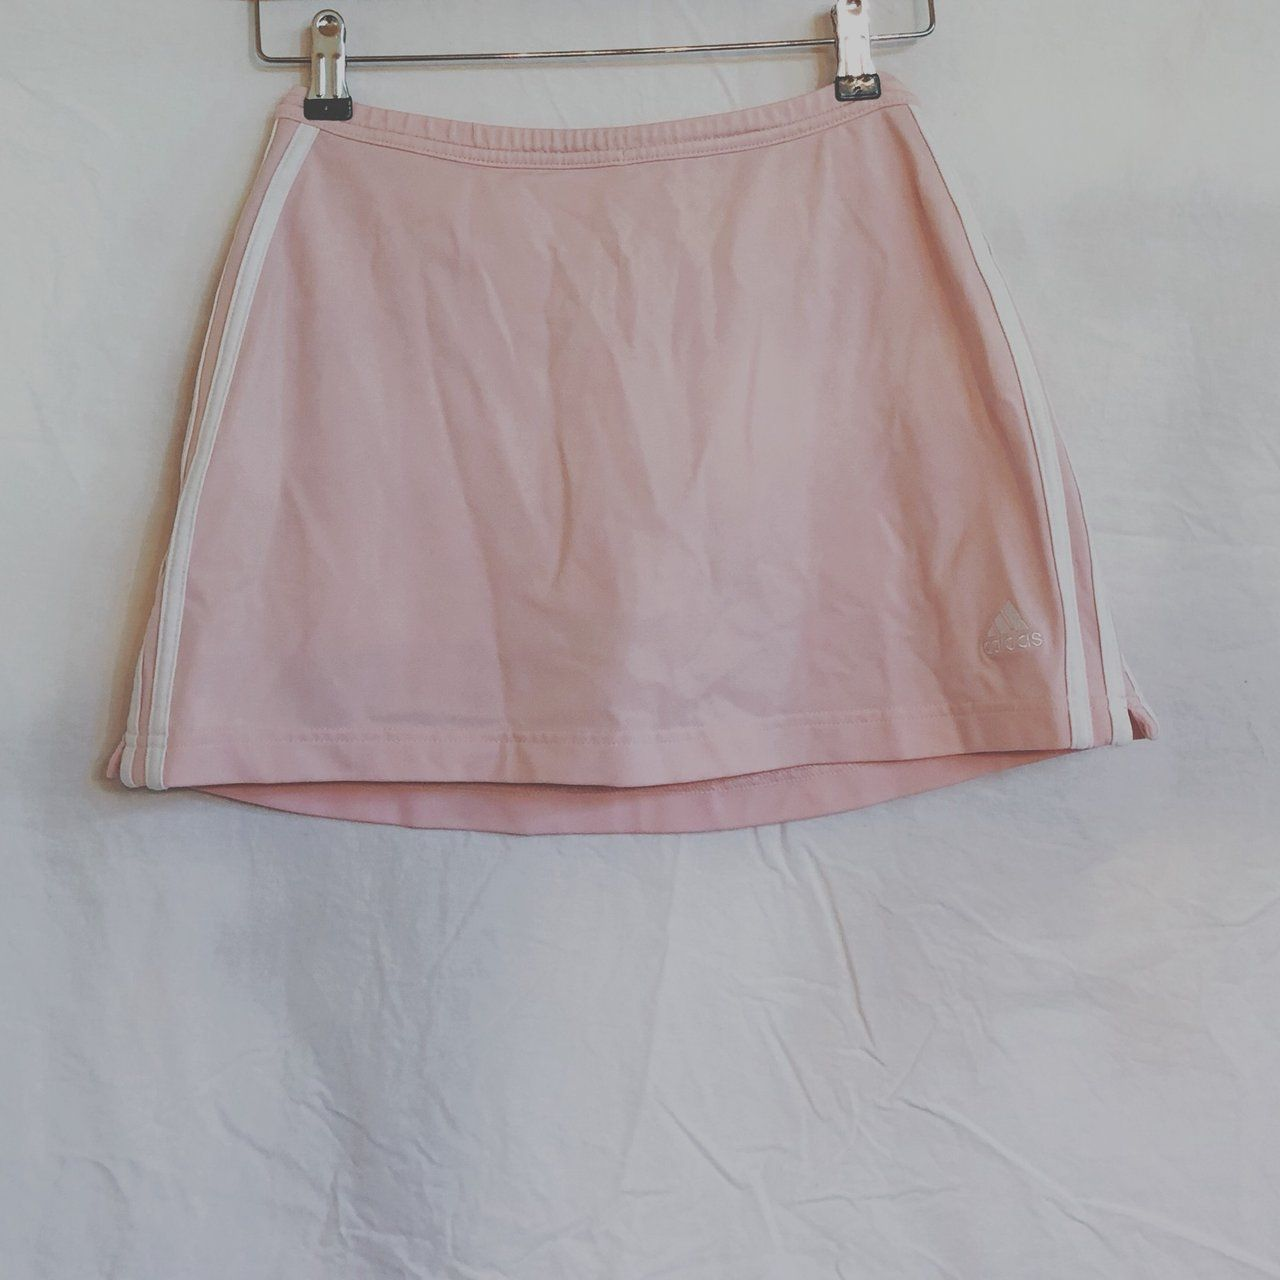 e655973168 The cutest Adidas light pink skirt! Its from their dry fit line so it can  be used for sports or it's also cute to wear out! Has shorts under so it  keeps ...